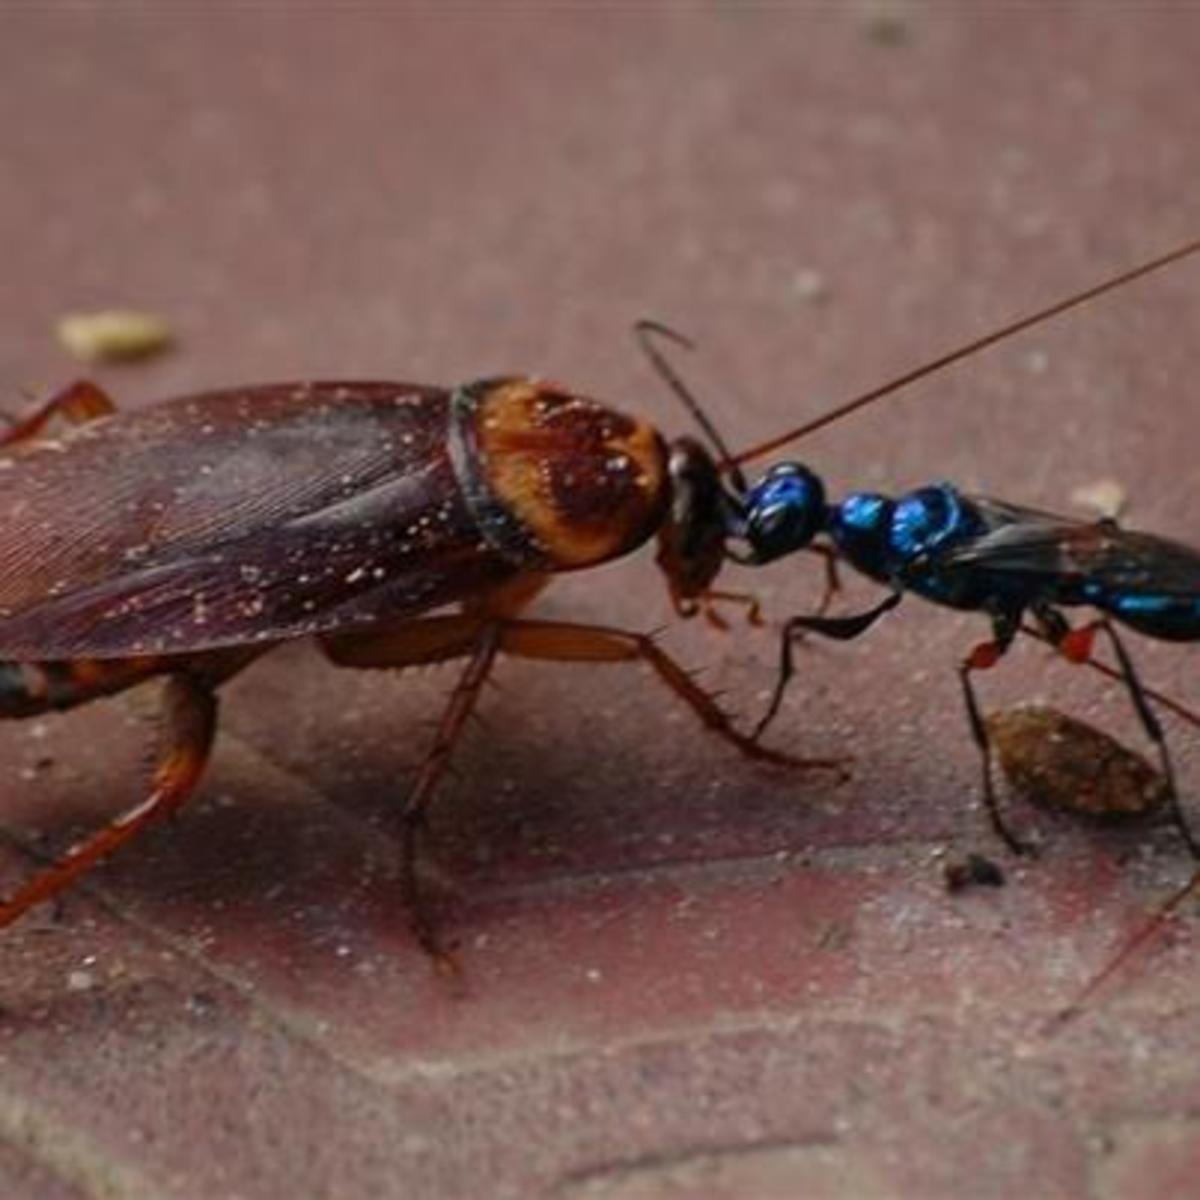 Seen here is the female jewel wasp leading a cockroach back to her place, where she will make sweet, sweet terror to it. All's fair in love and war, right?